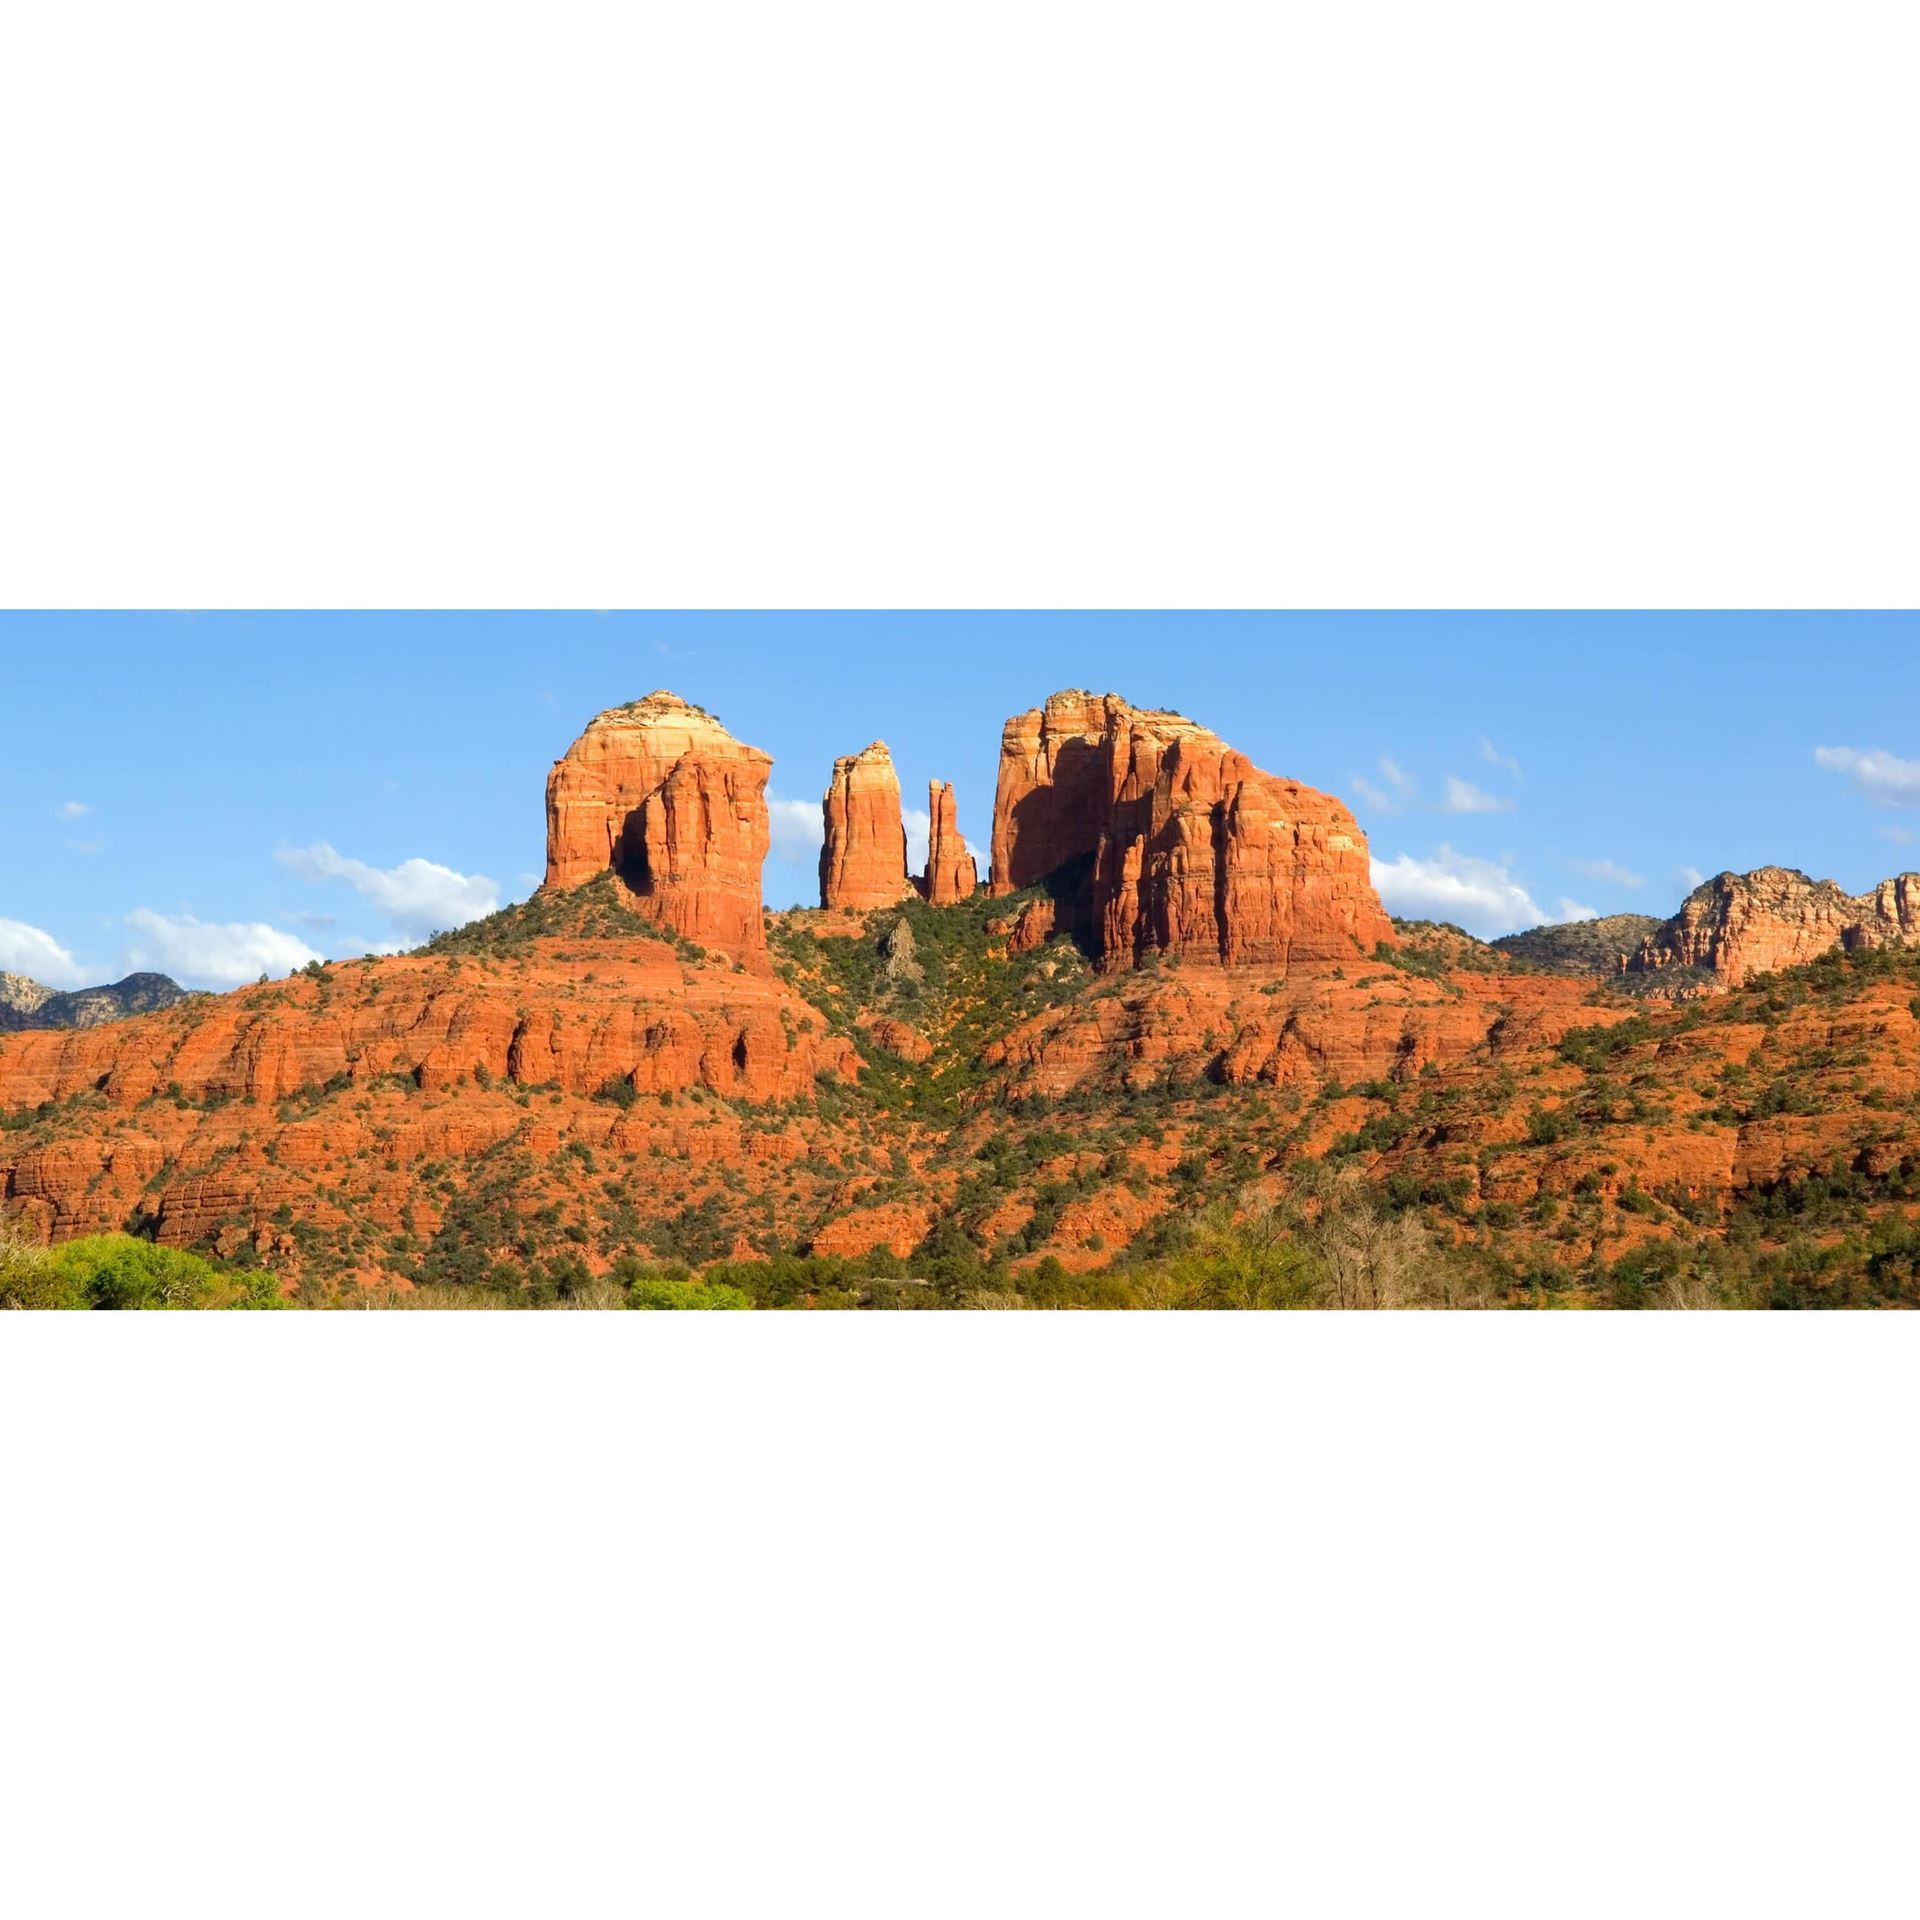 Classic Cathedral Rock 60x20